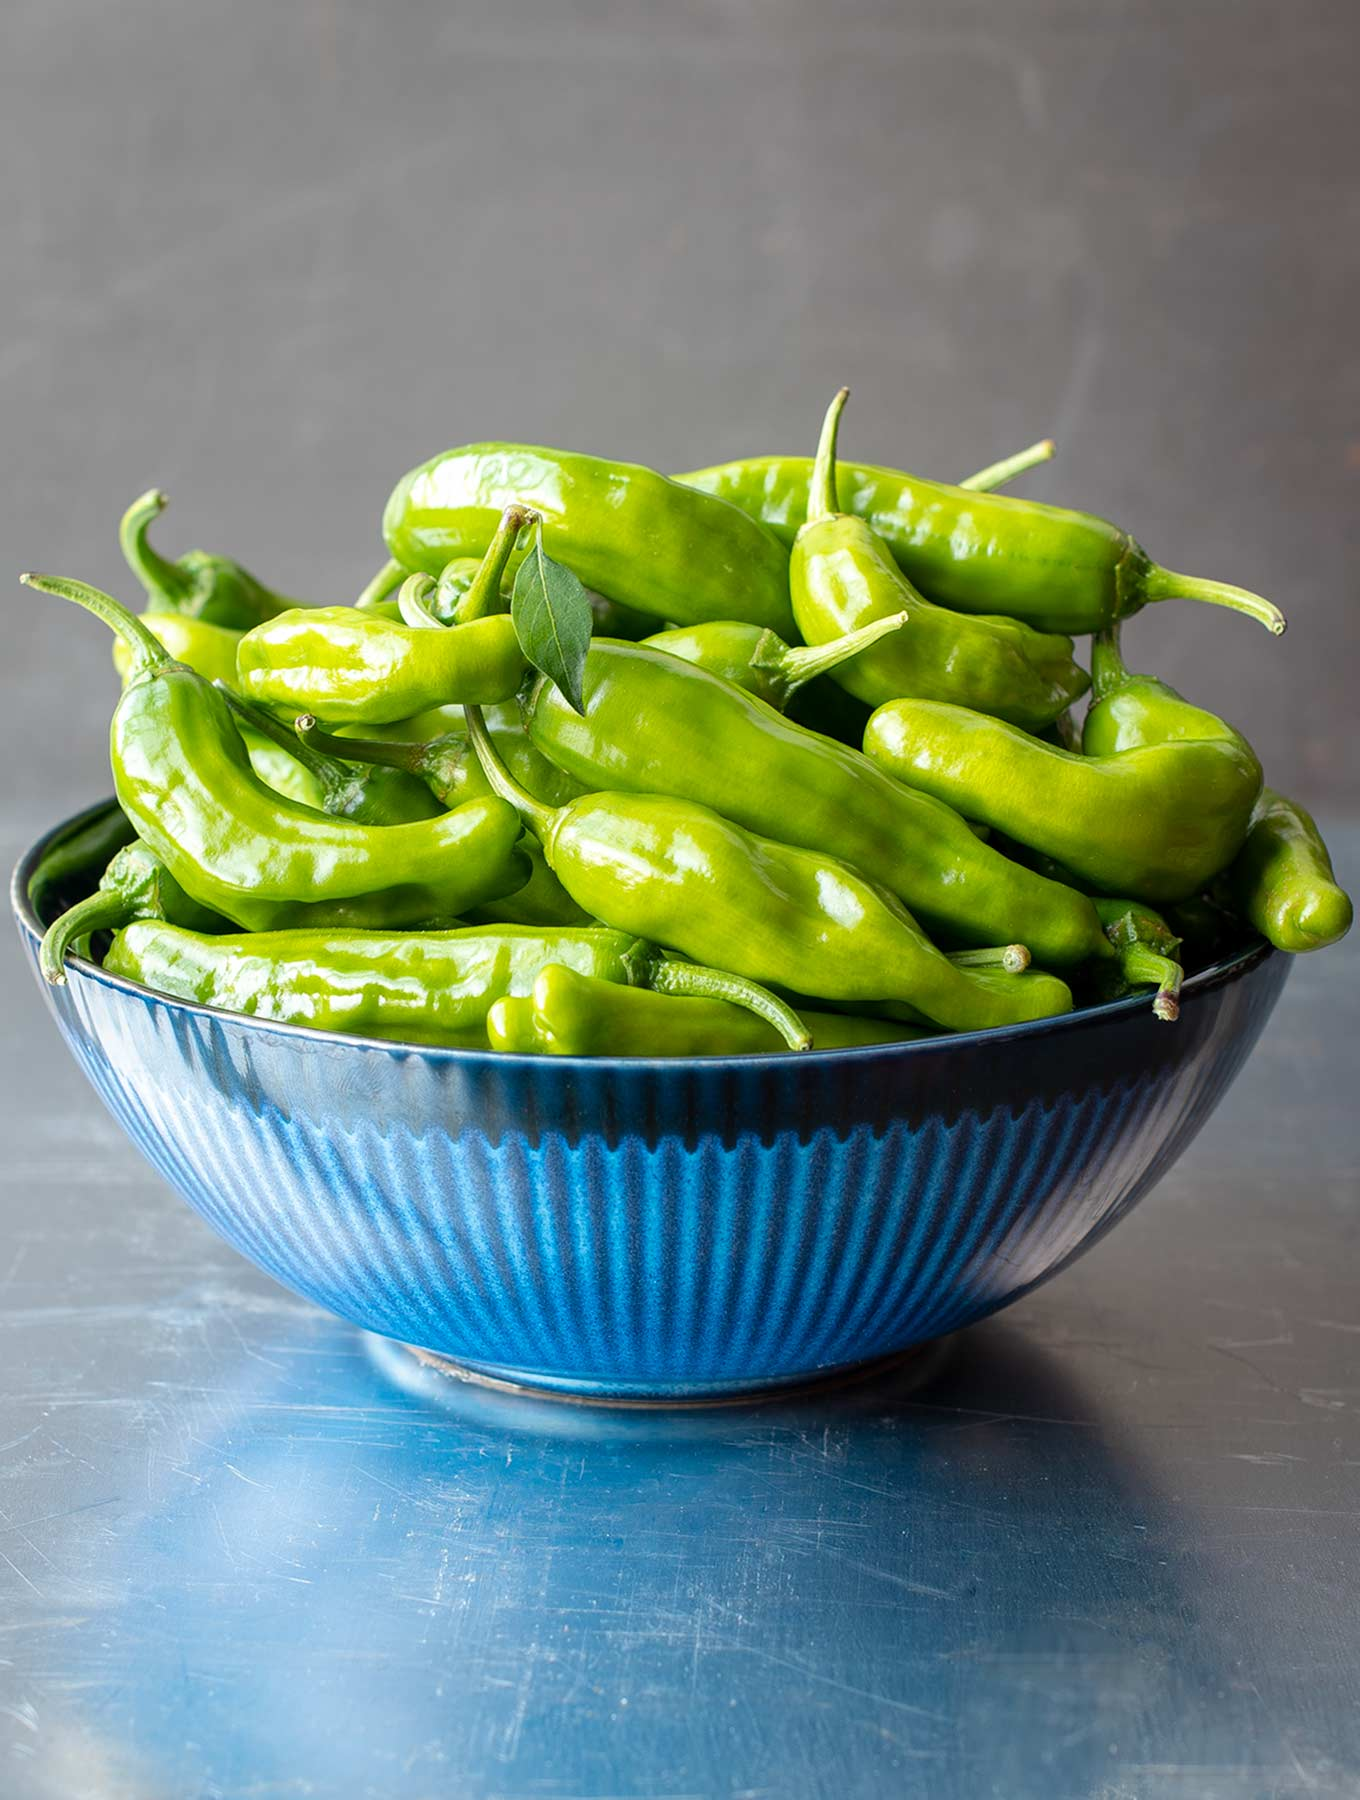 Blue bowl of shishito peppers